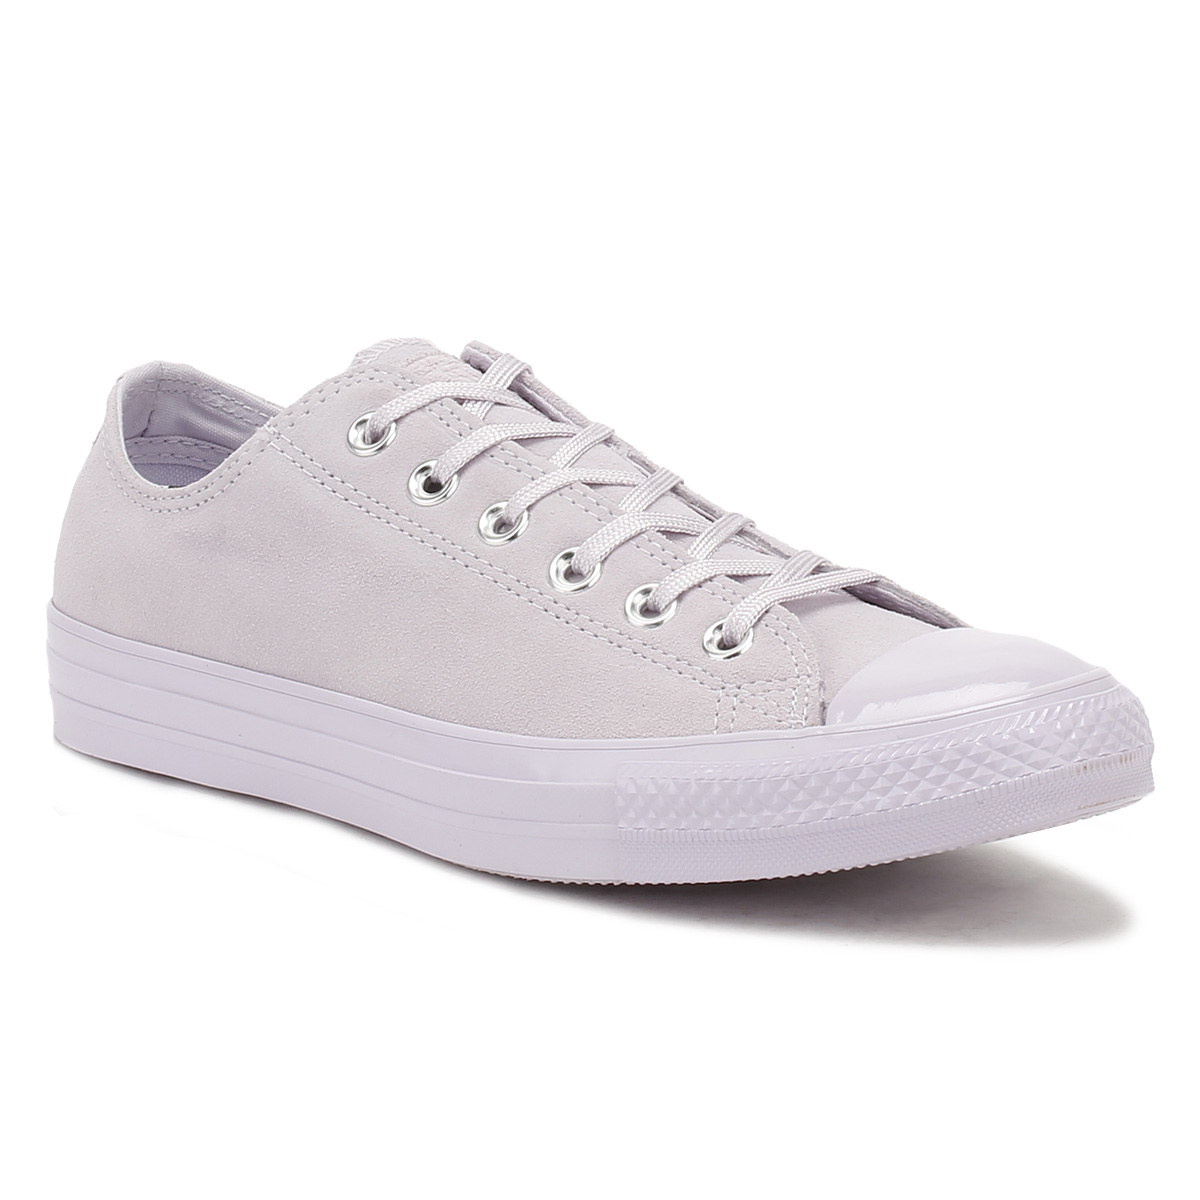 ee1bef302c7df5 The classic Converse low-top has been revamped in a soft plush suede with  tonal laces and metal eyelets. Other features of this pair include pattern  tread ...